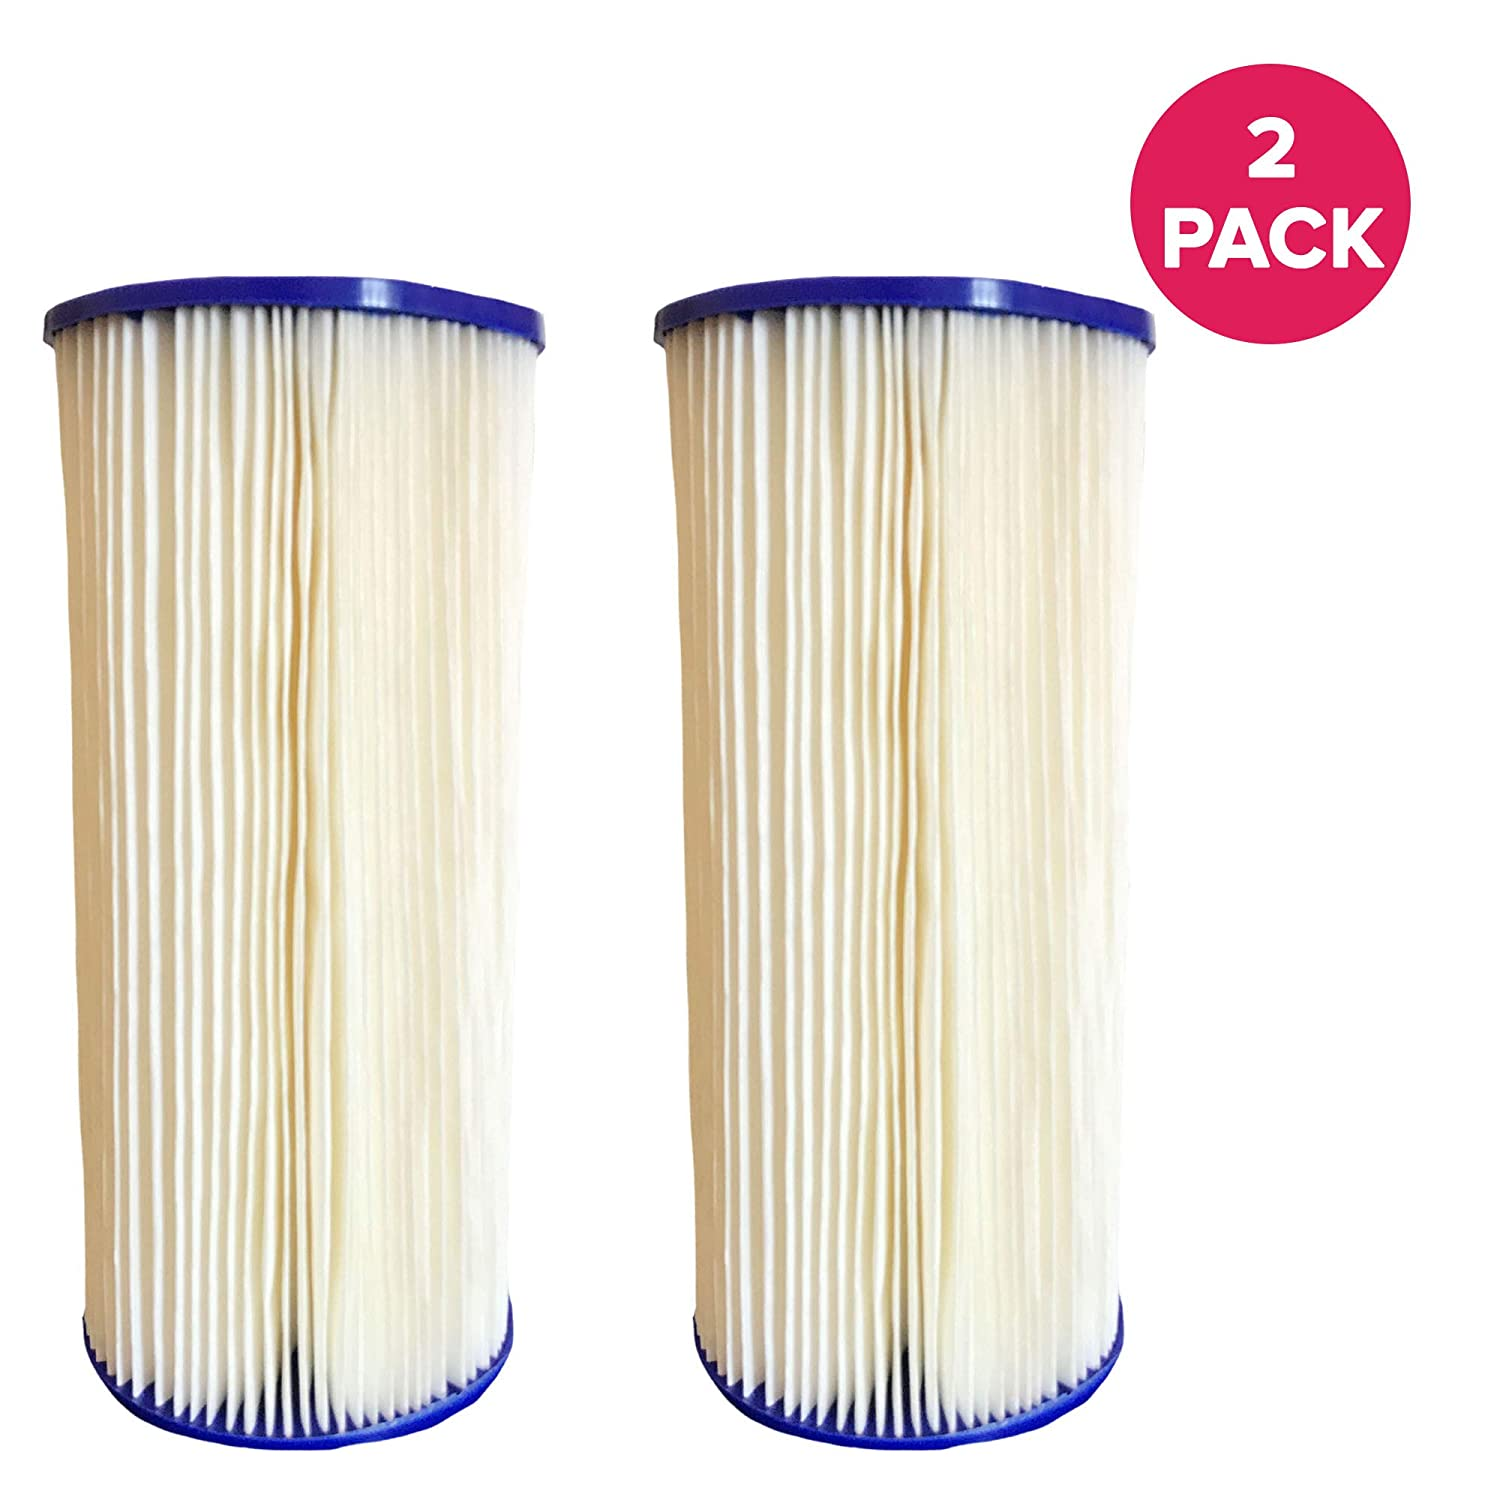 Think Crucial Replacement Water Filter Compatible with GE FXHSC Whole House Pre-Filtration Sediment Filter Bulk Pentek R50-BB Dupont WFHDC3001 4 Pack Fits Most GE Models Culligan R50-BBSA